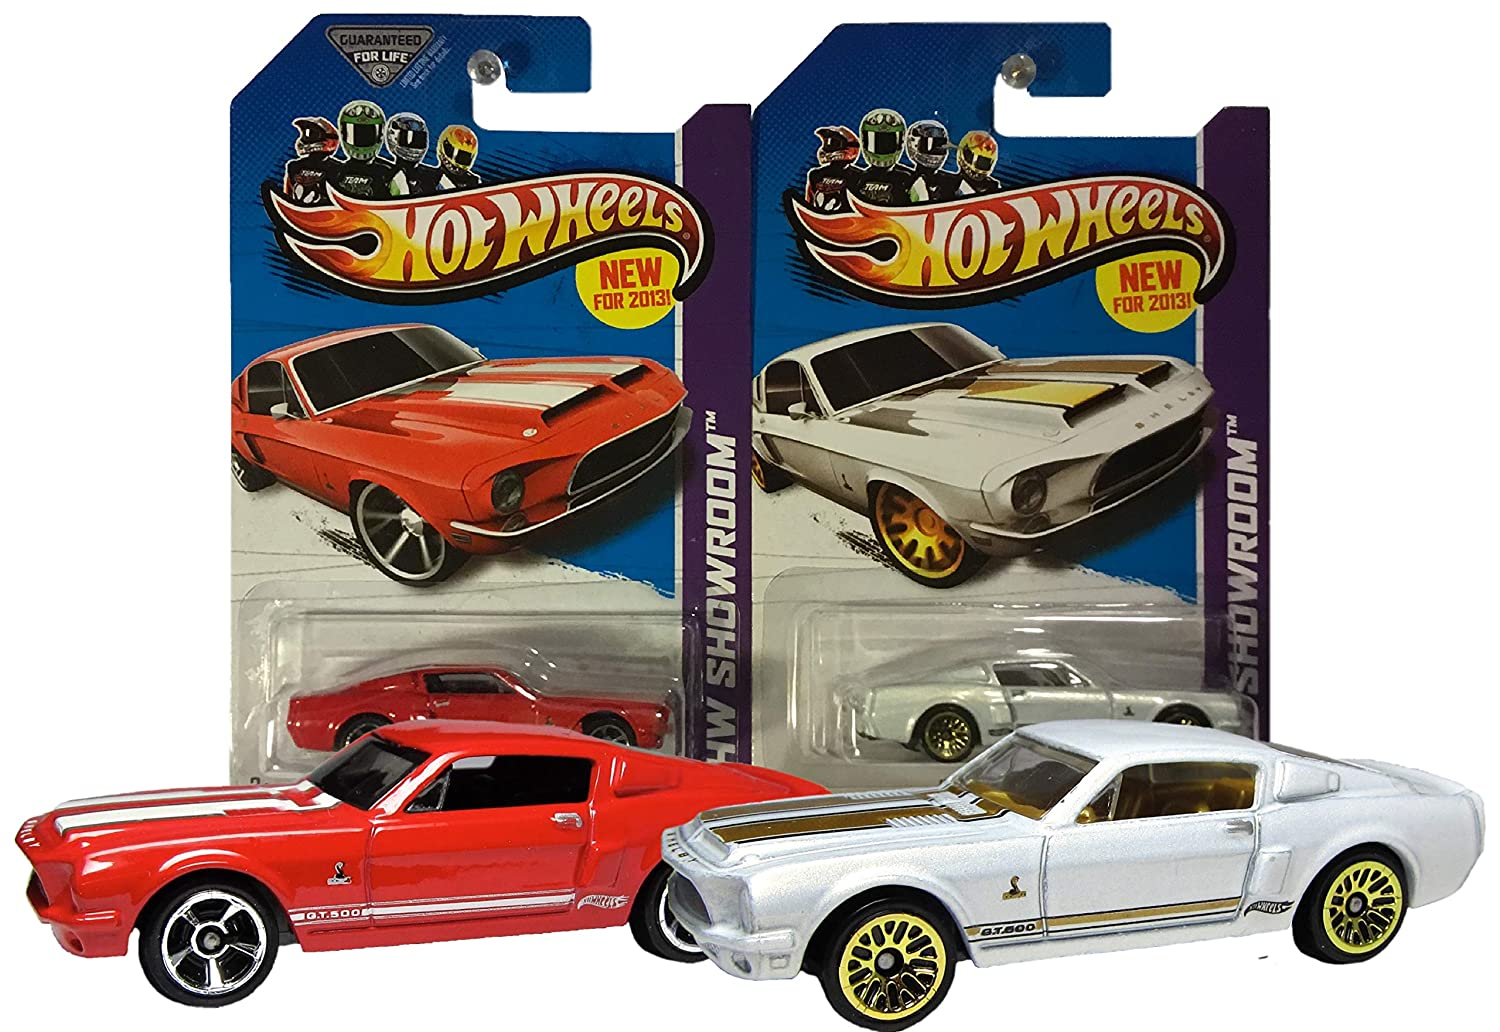 68 Shelby Gt500 >> Amazon Com Hw Hot Wheels 2013 245 250 Showroom 68 Shelby Gt500